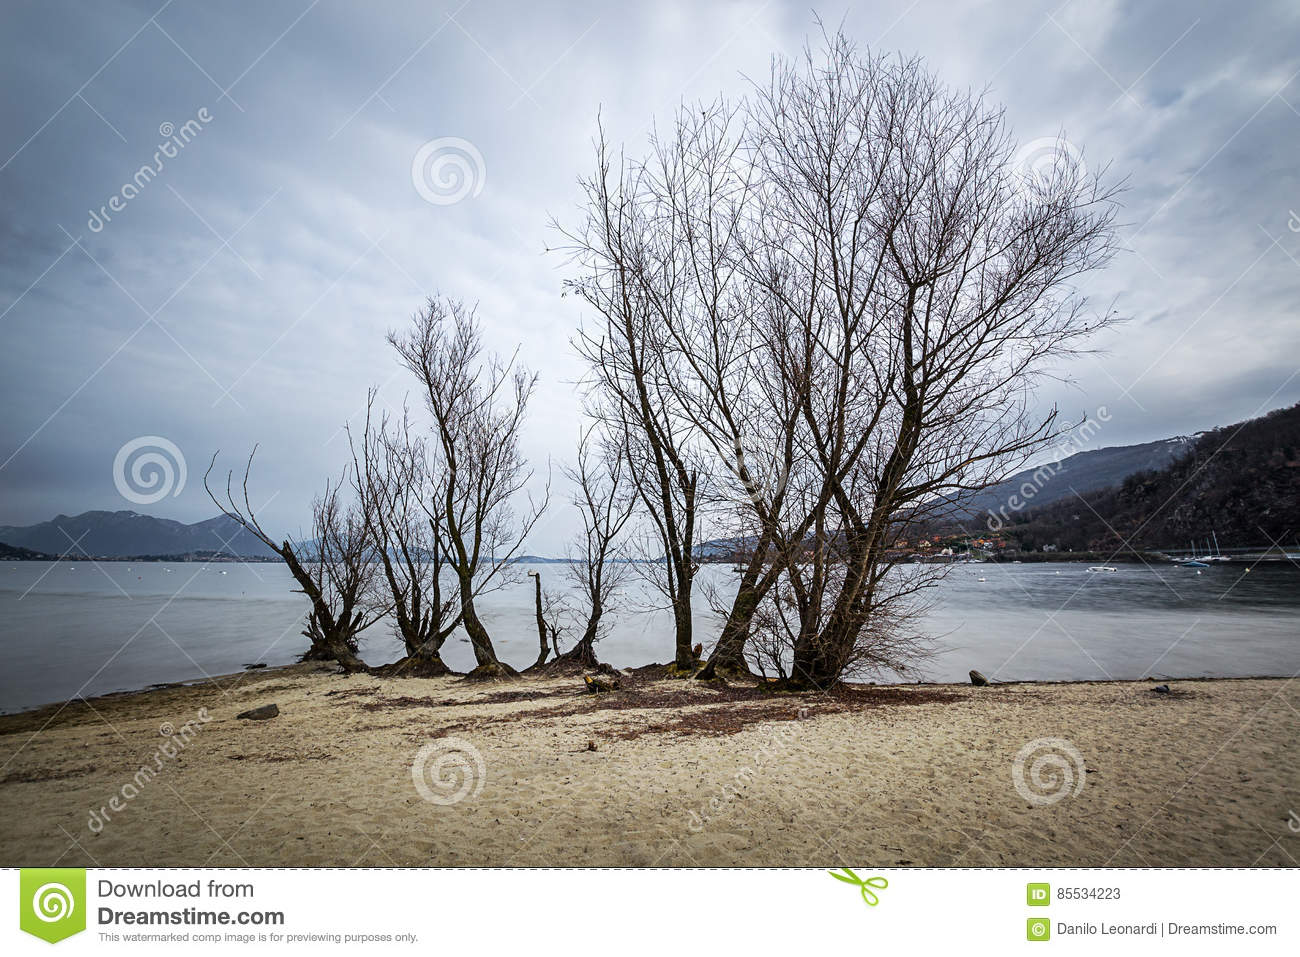 Tree by the lake